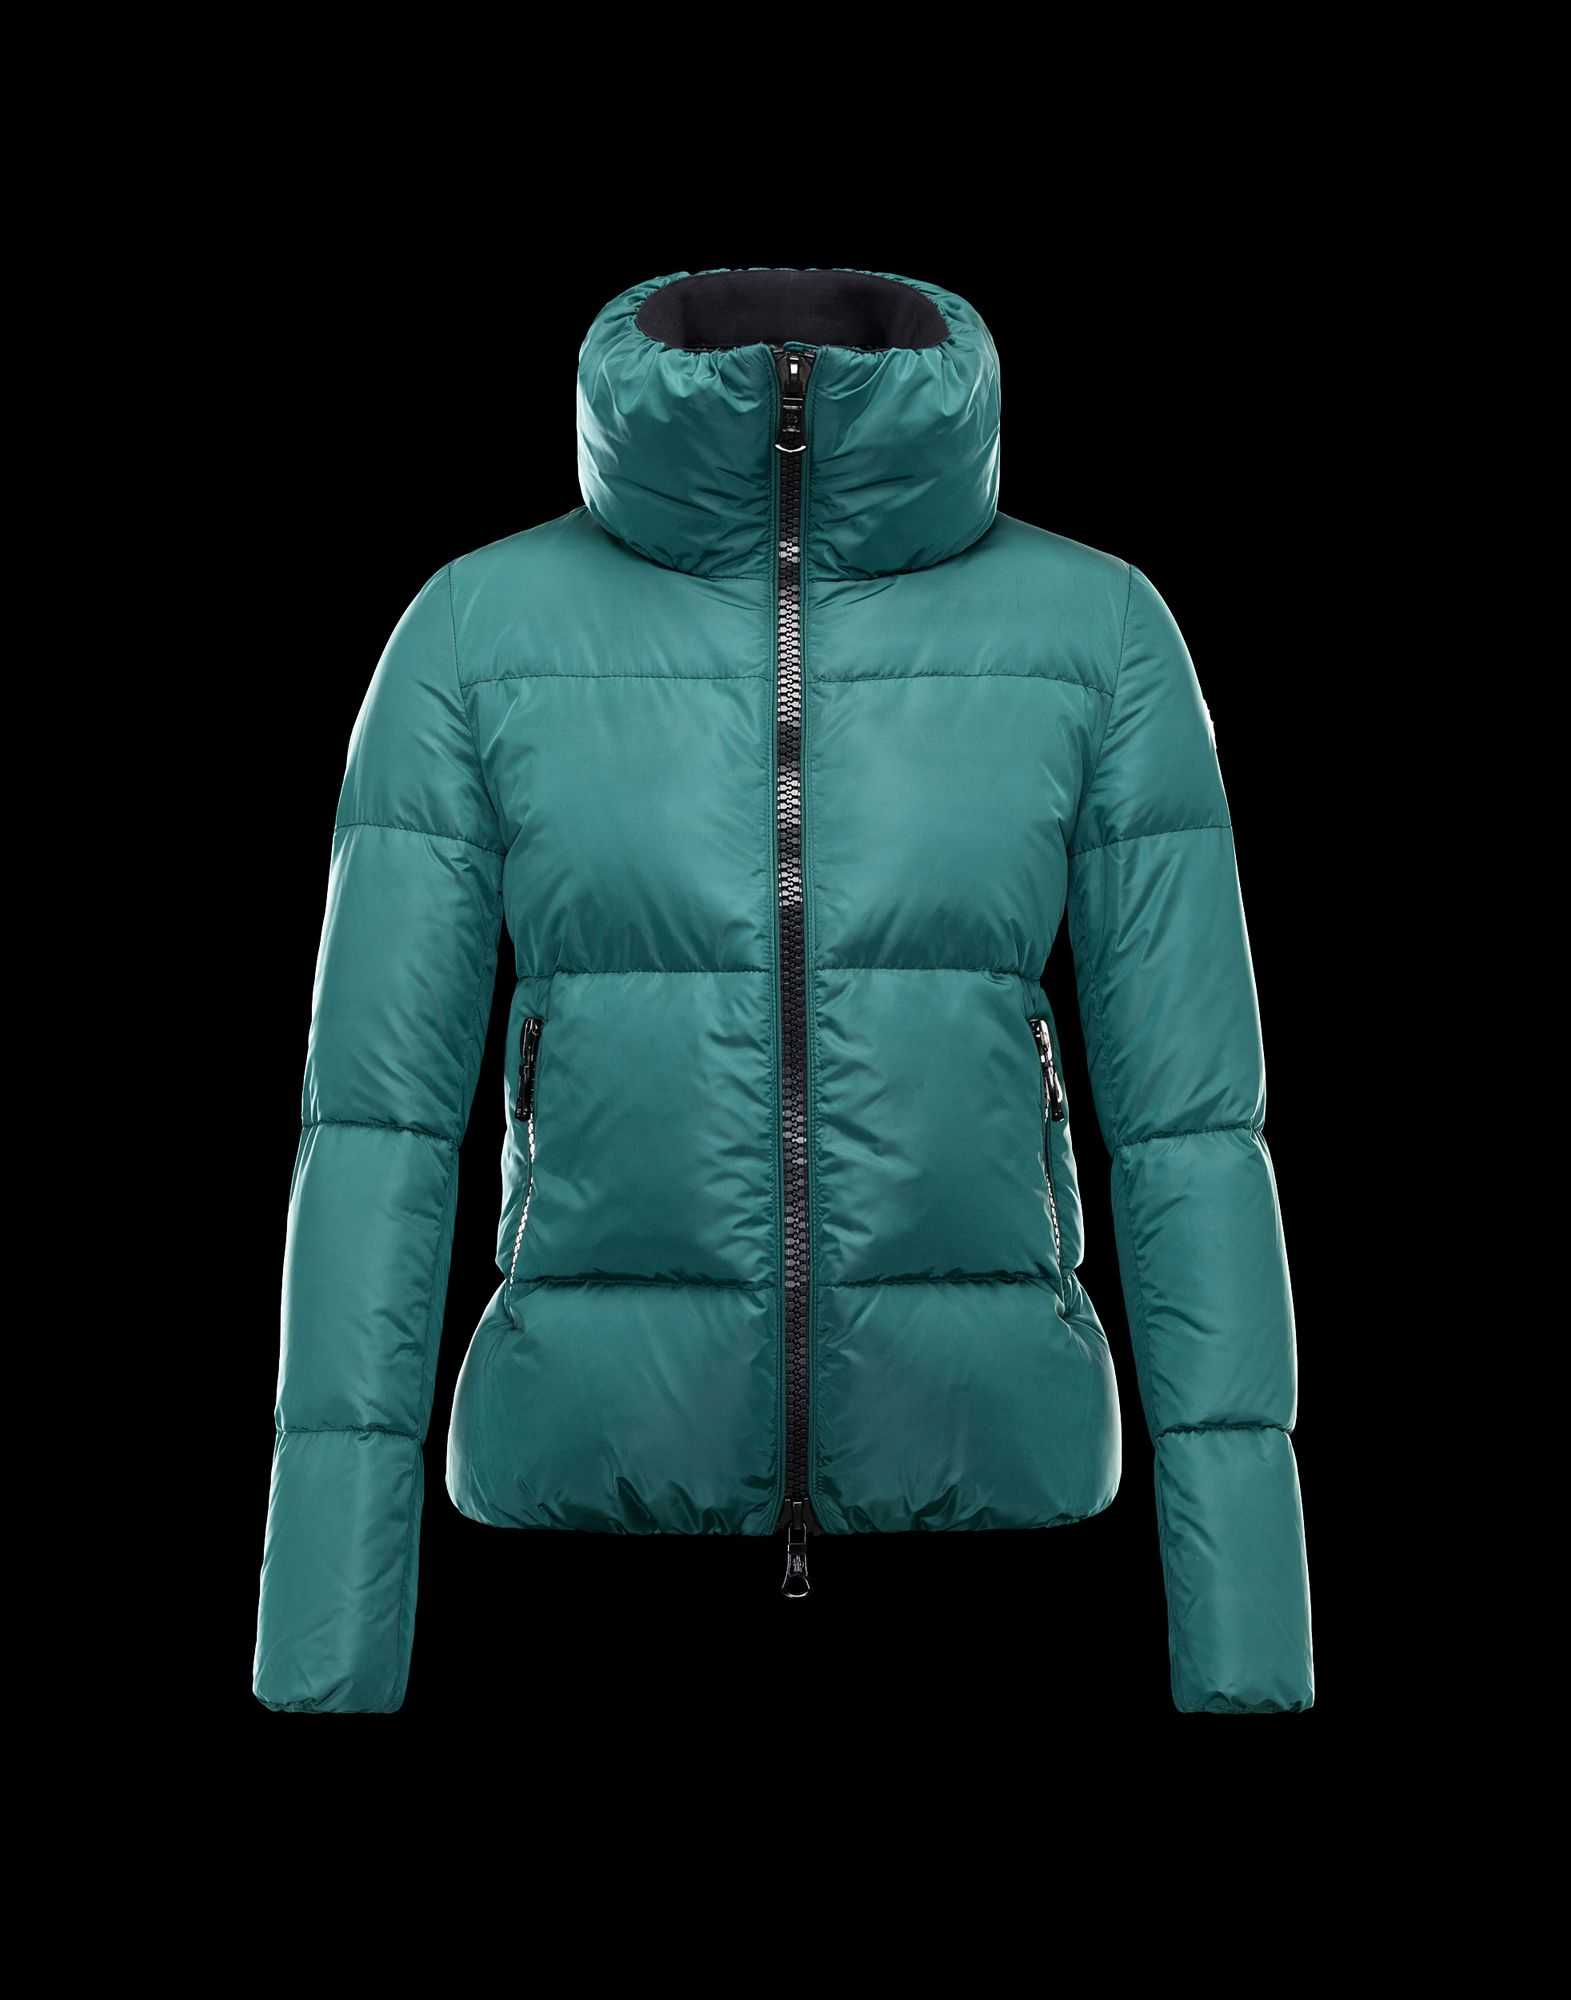 Moncler CHERY Jackets For Women Zip Collar Green